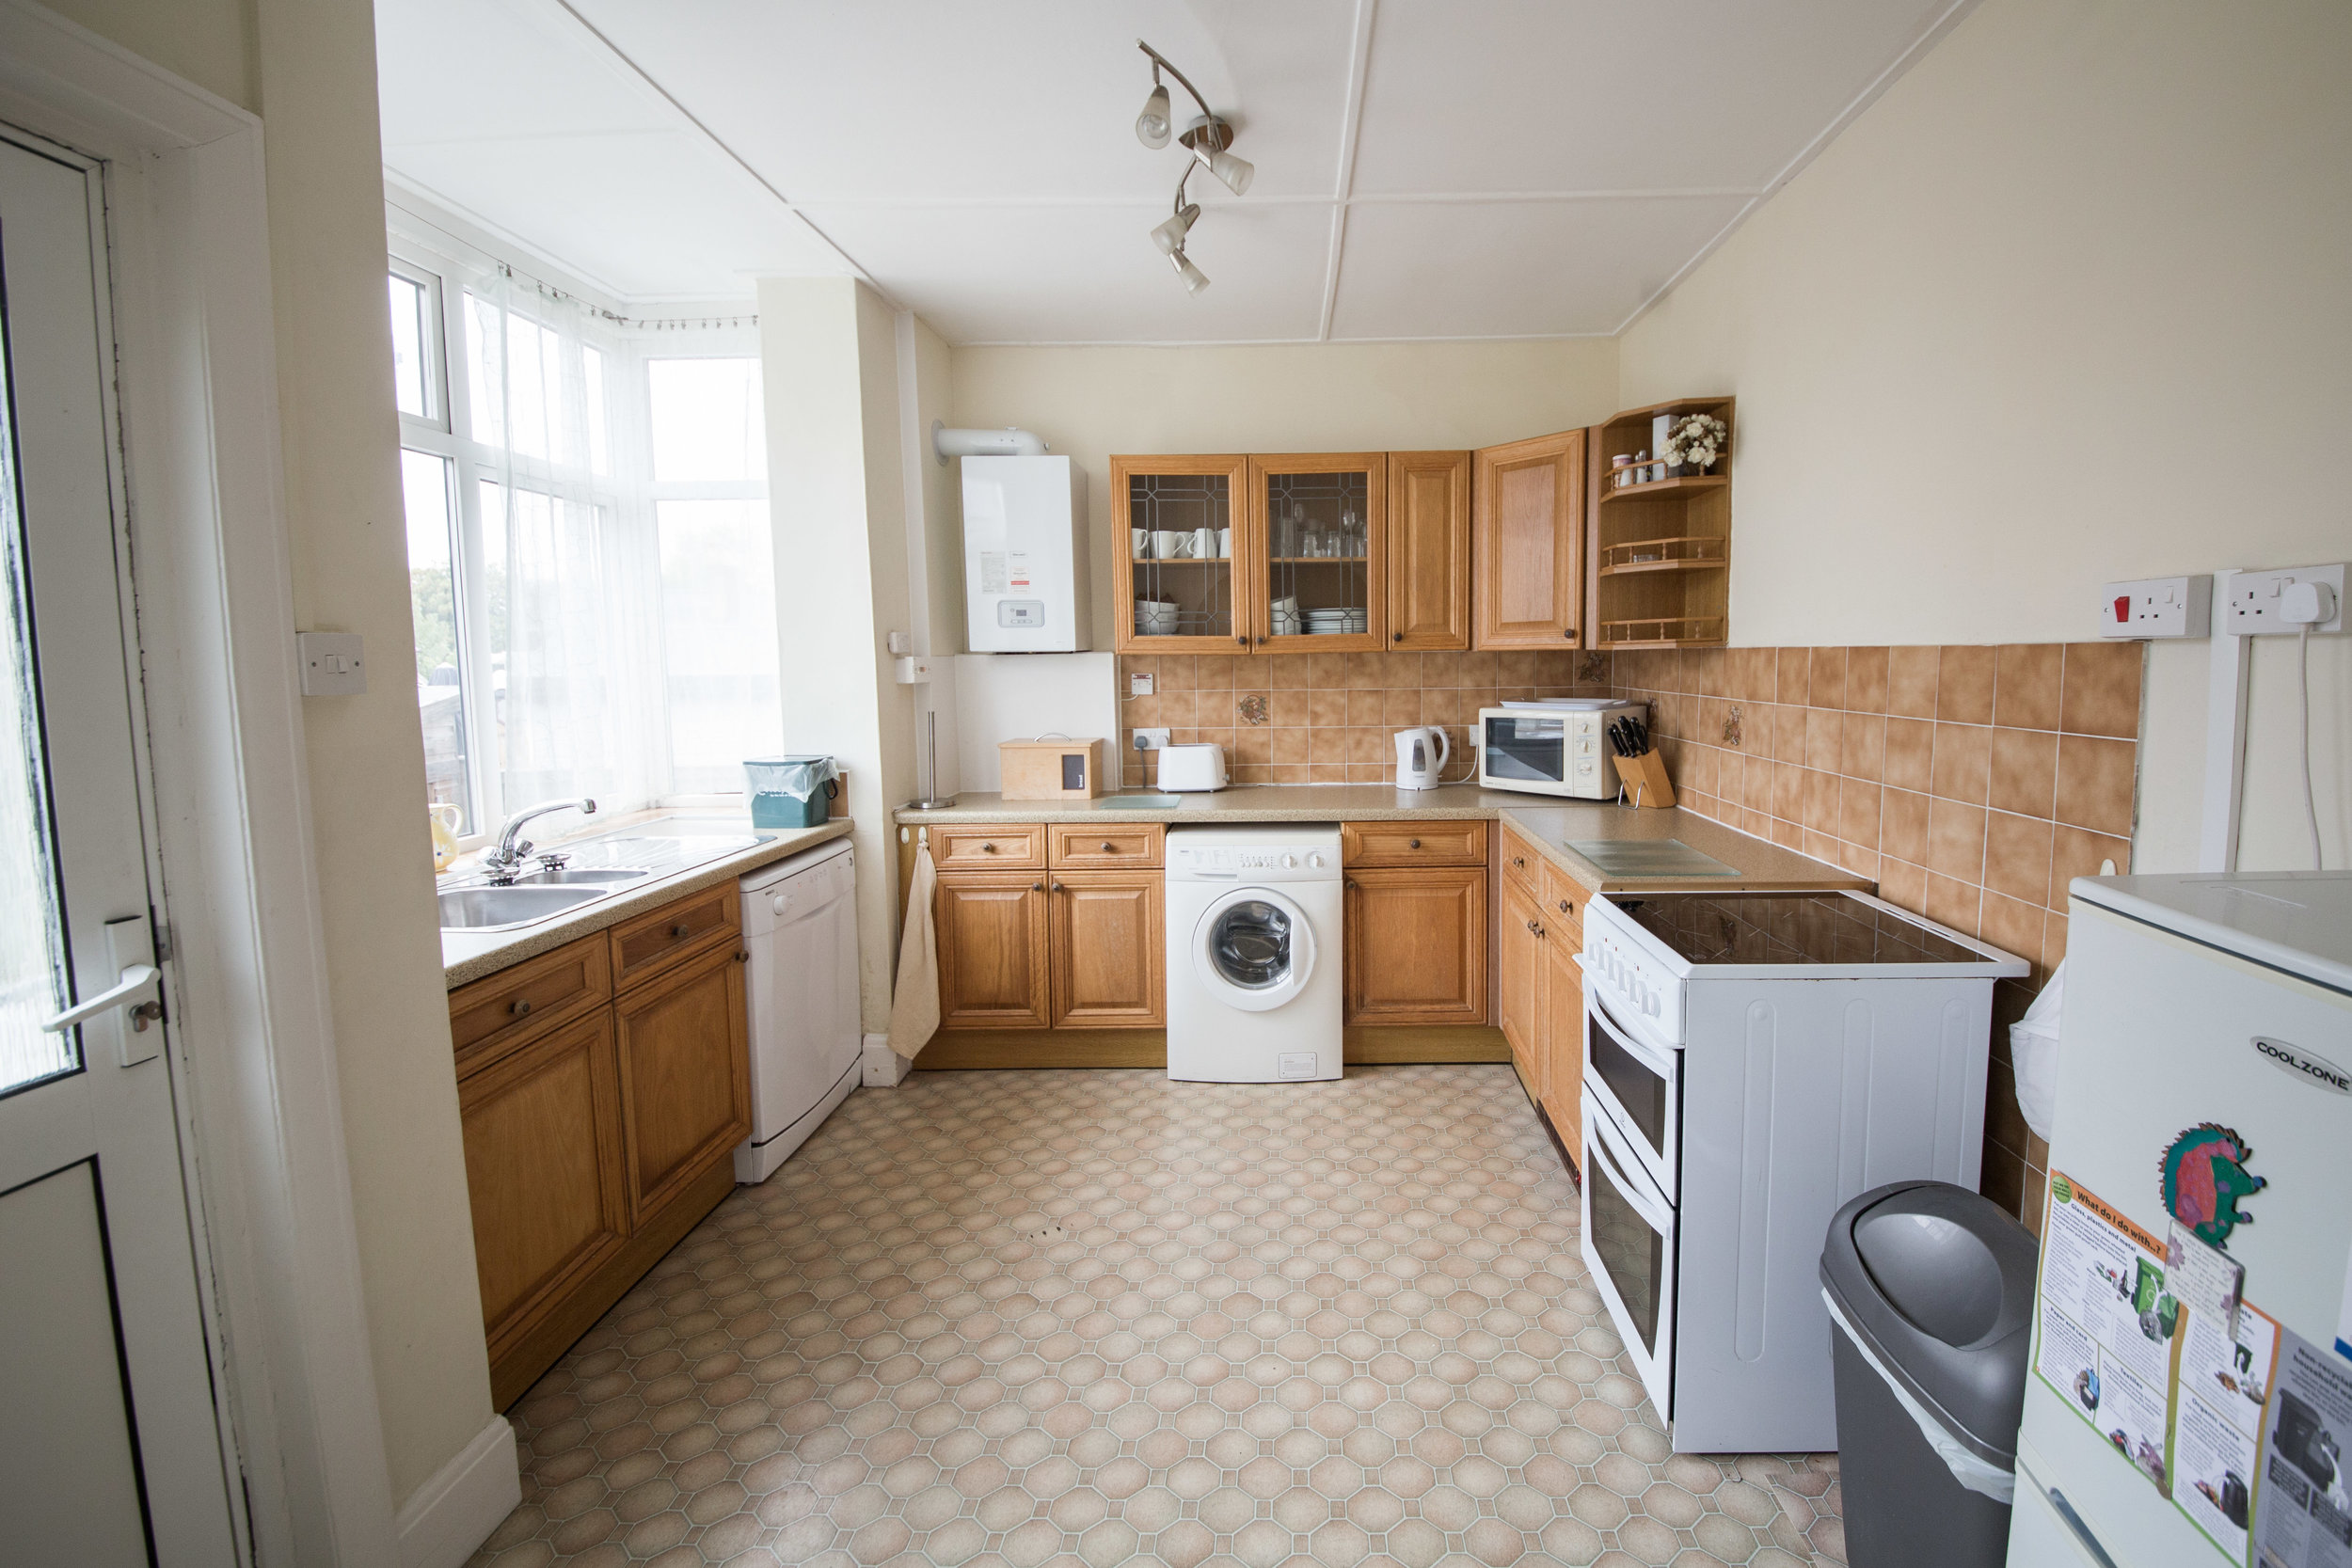 Kitchen, 3 Bedroom house Sandown, Isle of Wight